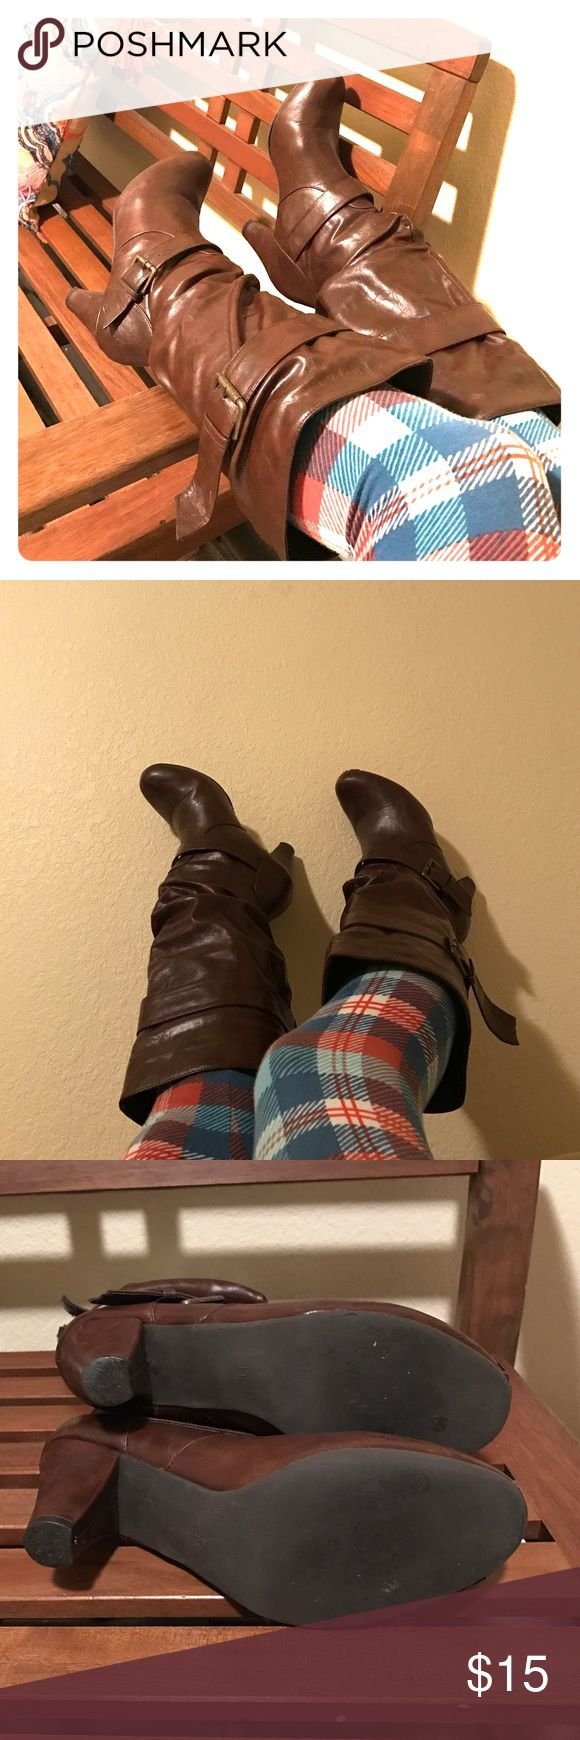 Sexy Slouchy Brown Faux Leather Boots Size 10 Super cute slouchy boots in a dark shiny brown. Excellent used (twice!!!) condition. Make these your new boots for 2017!!! Strut in style! Cute bronze buckles accent top and bottom of boot. Size 10, faux leather. Shoes Heeled Boots